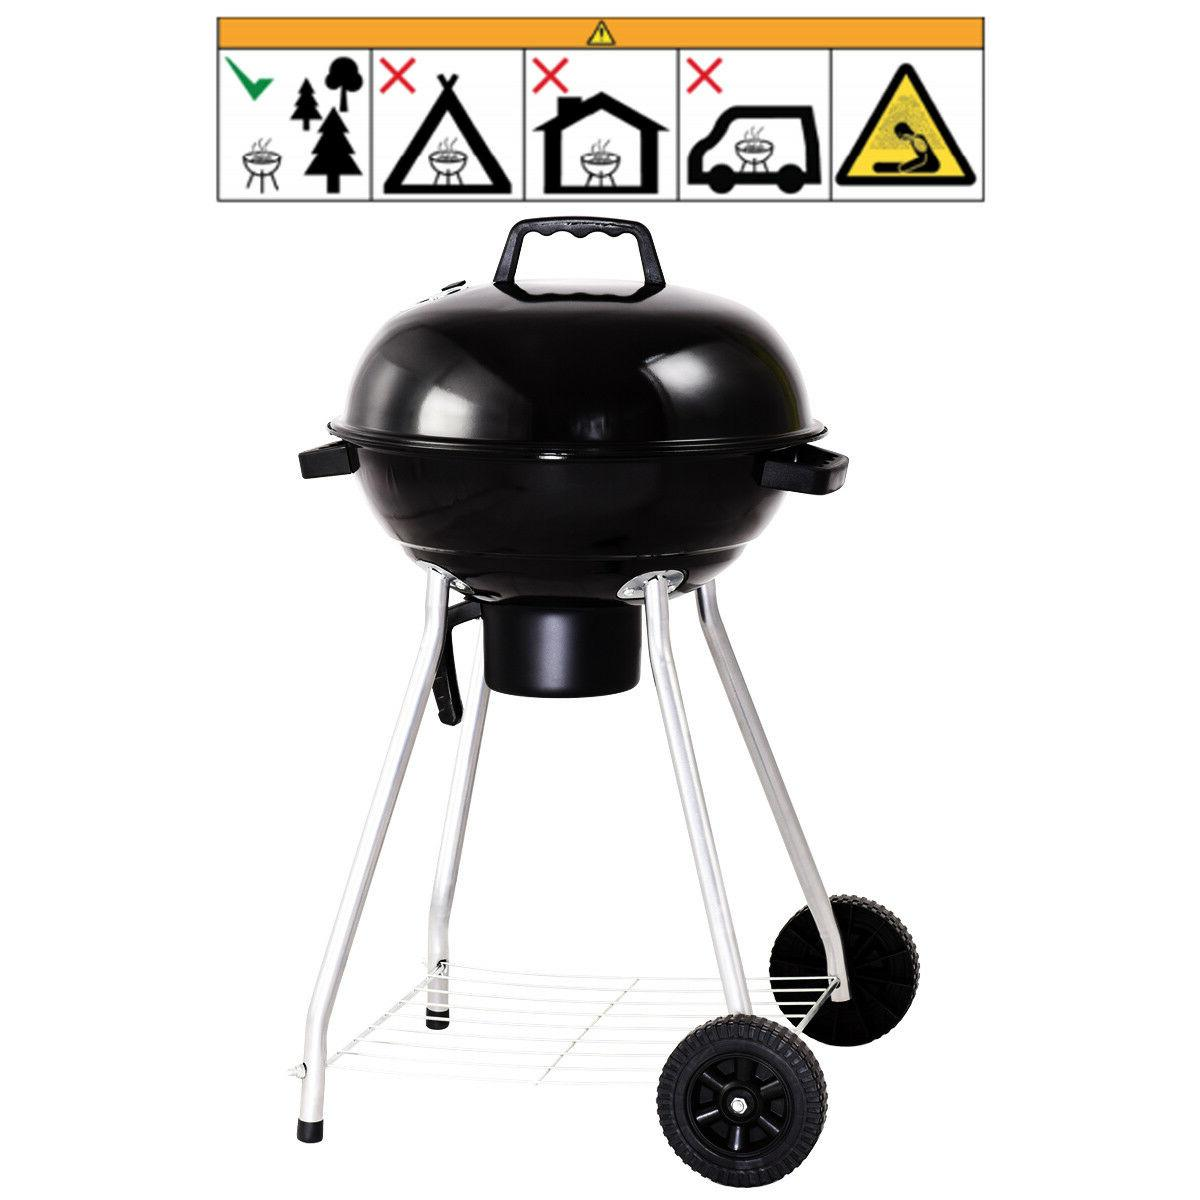 18.5-Inch Charcoal Grill BBQ Outdoor Backyard Cooking with